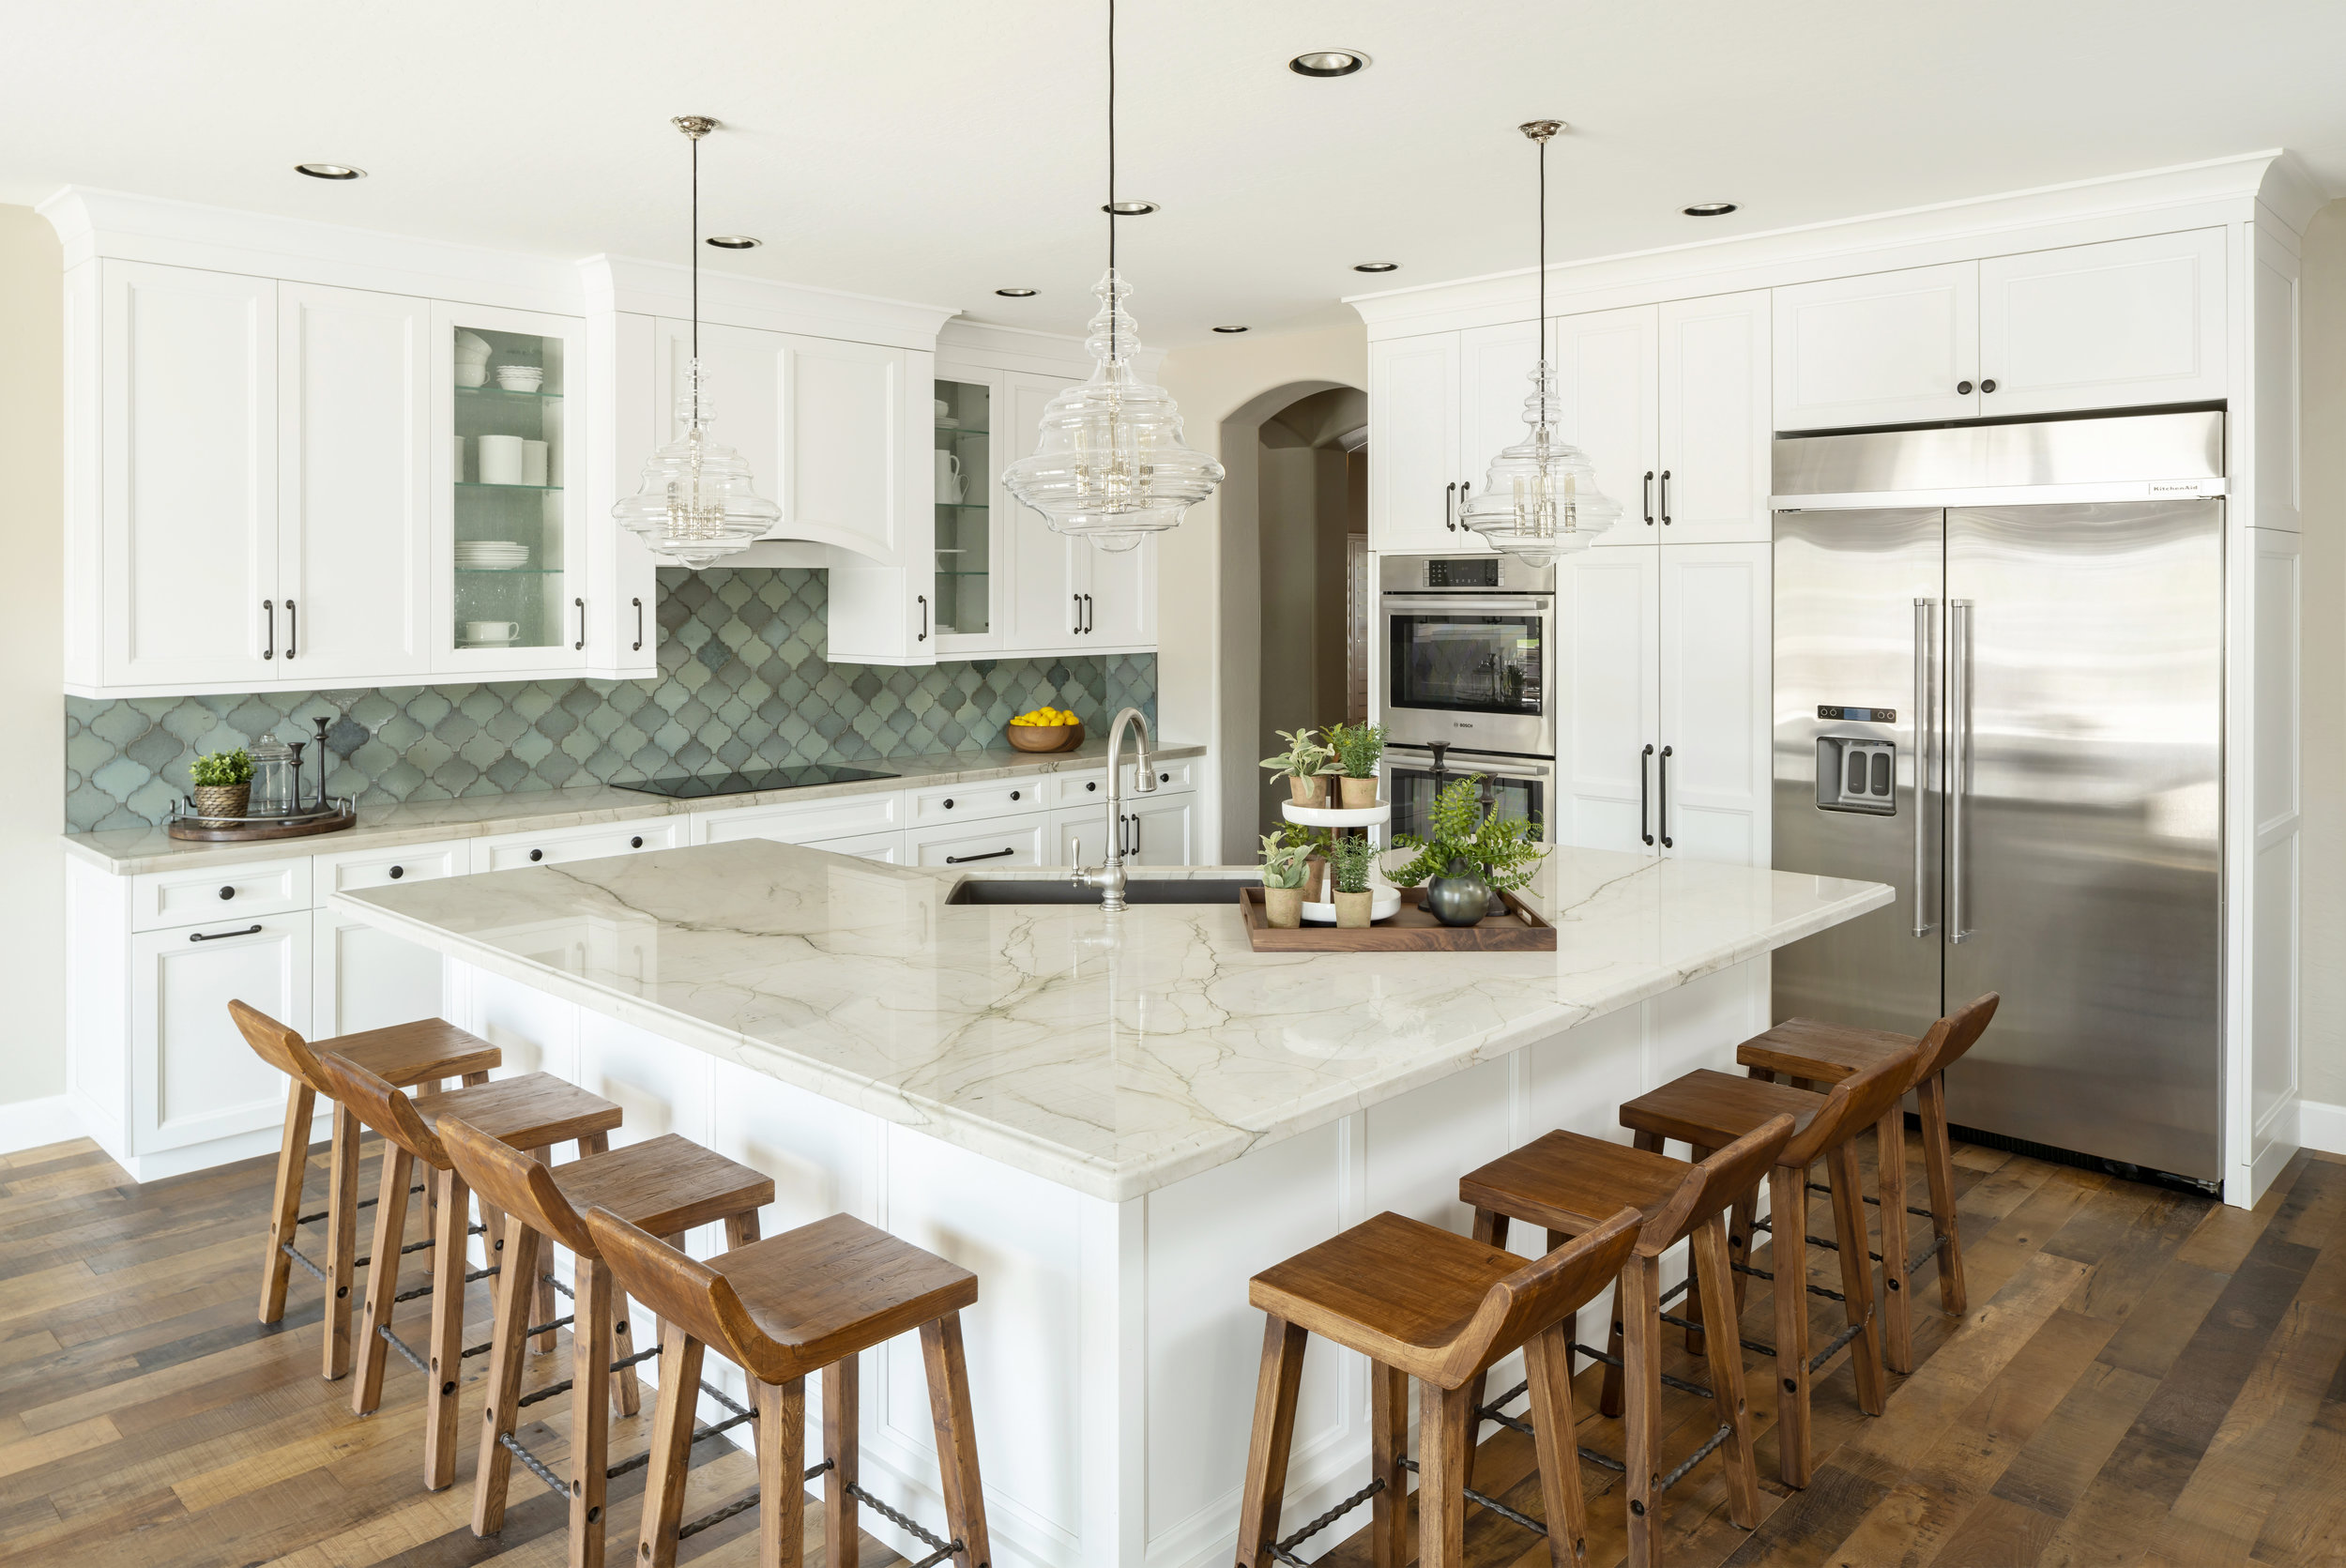 THE WELL-CRAFTED KITCHEN